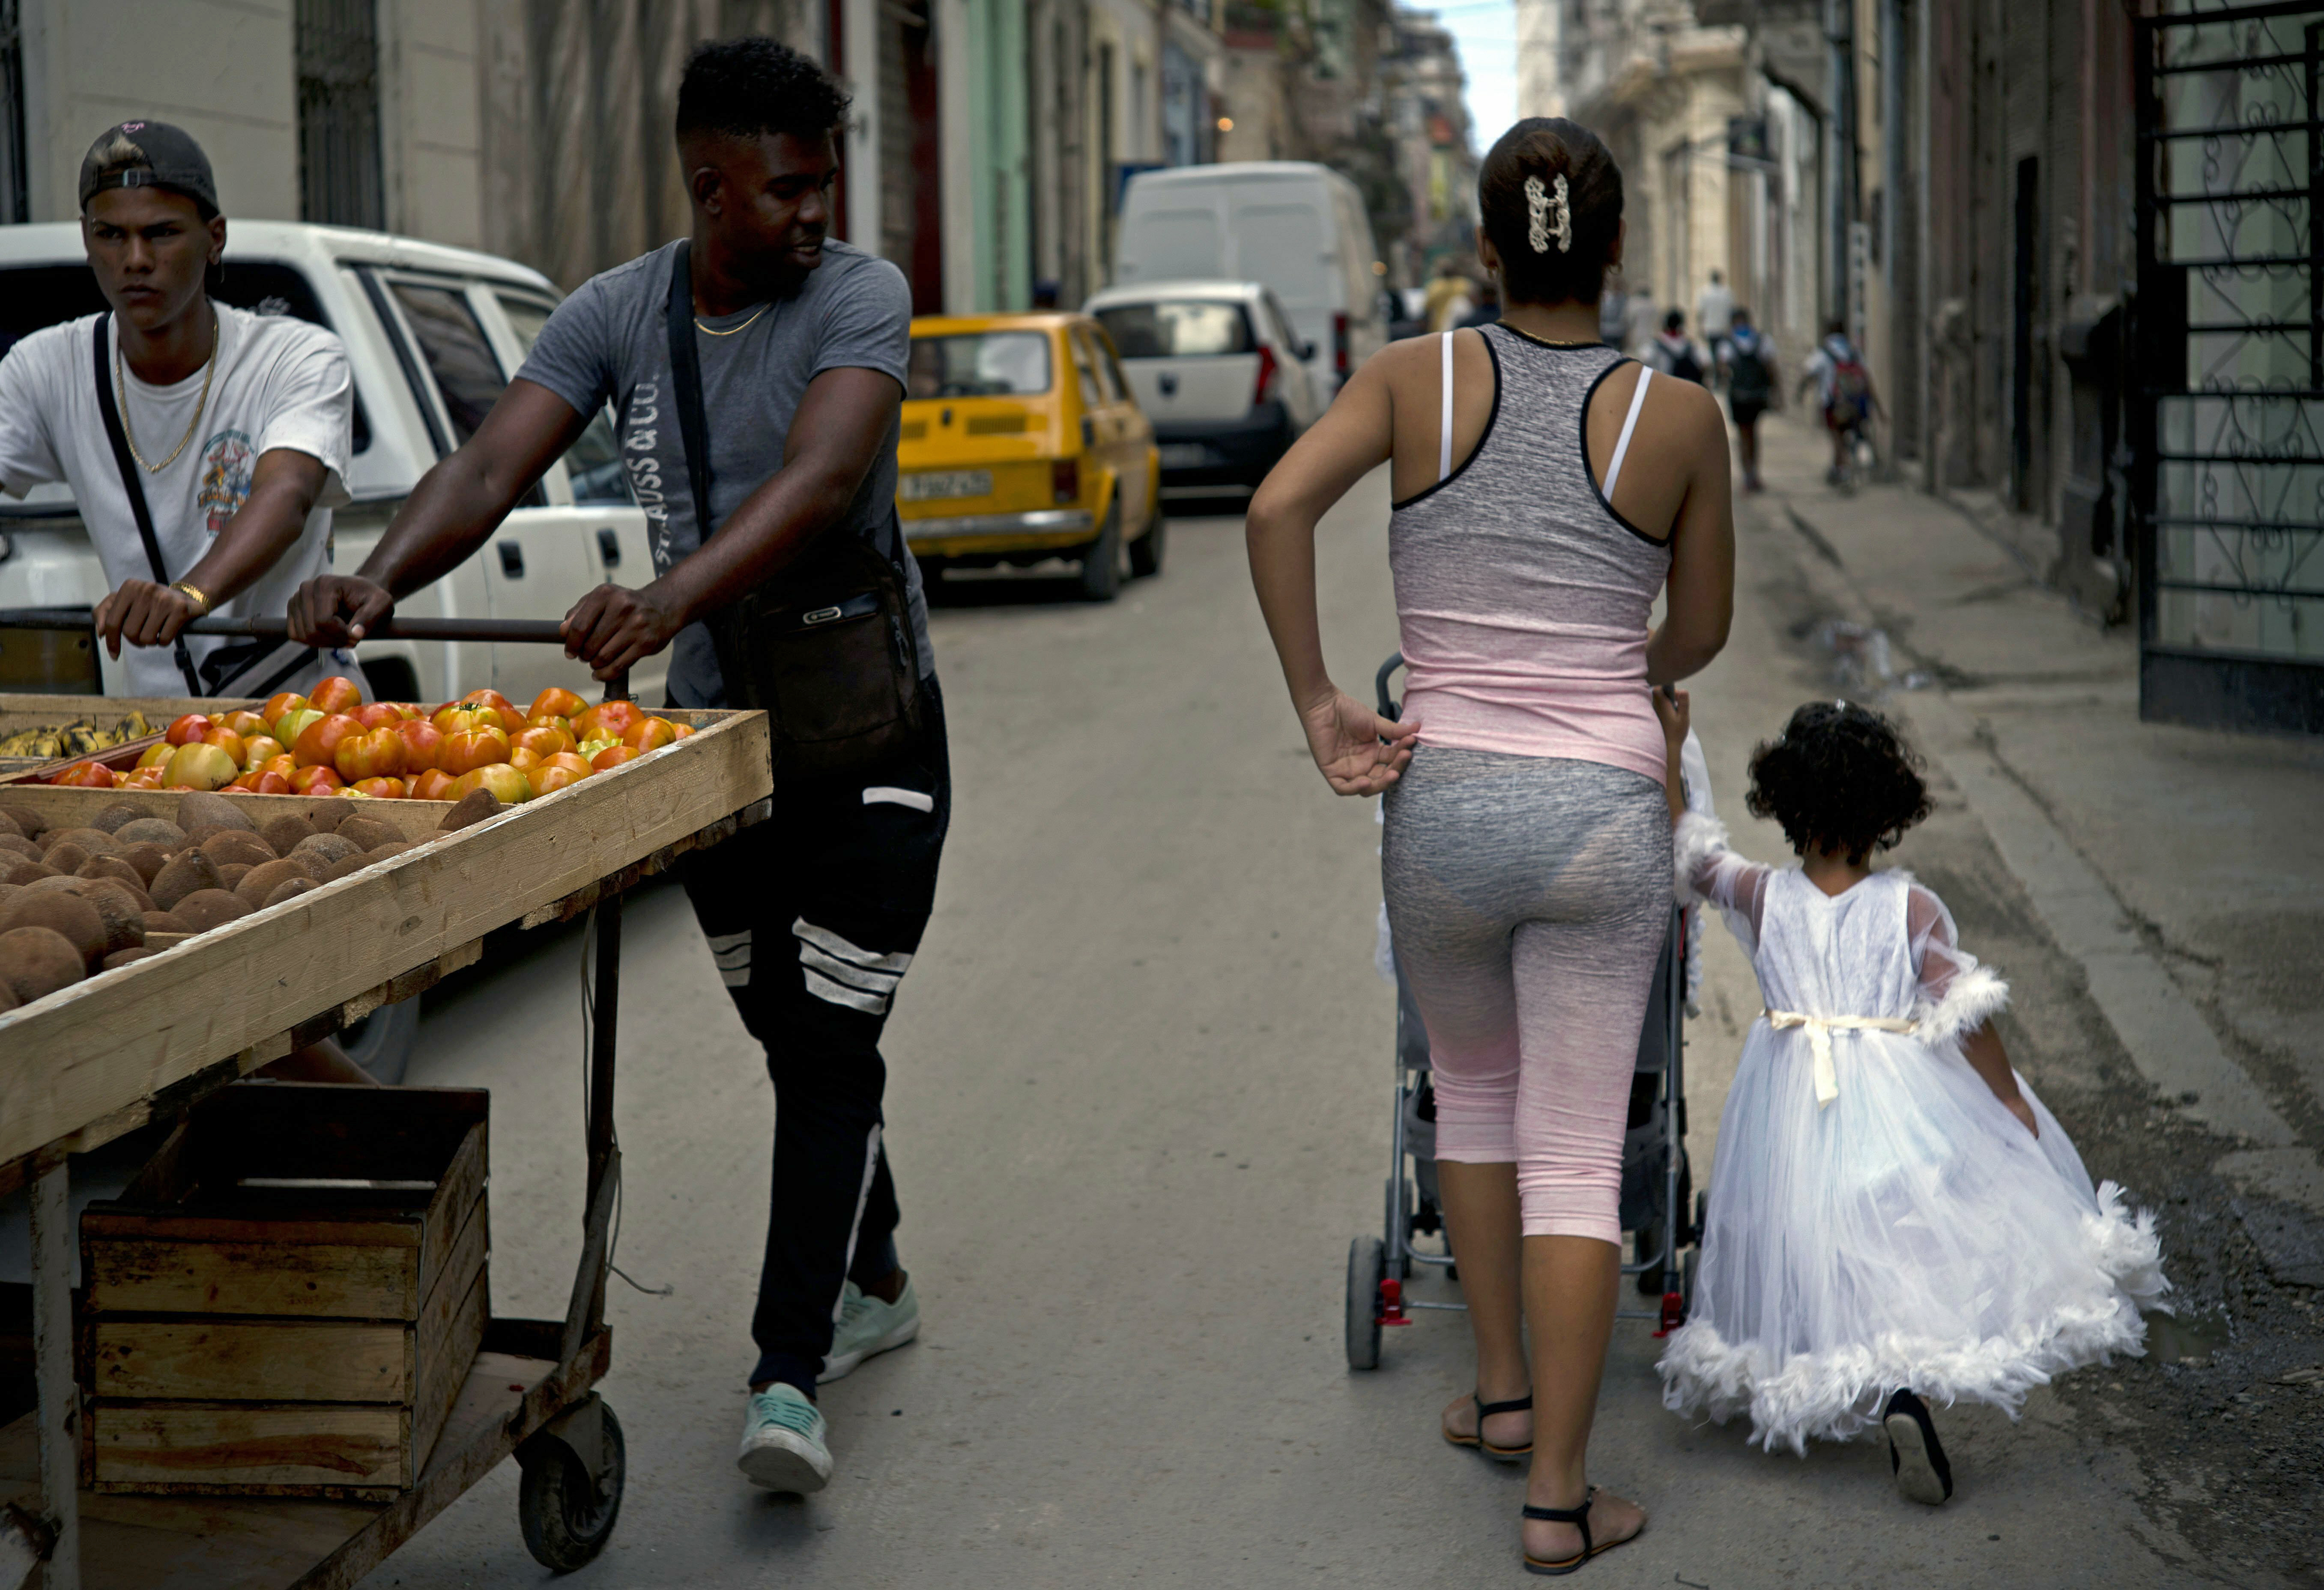 A girl in an angel costume walks with her family past vegetable vendors in Havana, Cuba, Wednesday, April 10, 2019. Communist Party leader Raúl Castro warned Cubans on Wednesday that they should brace for worsening shortages due to Trump administration policies, but said the island won't return to the extreme deprivation of the post-Soviet period. (AP Photo/Ramon Espinosa)